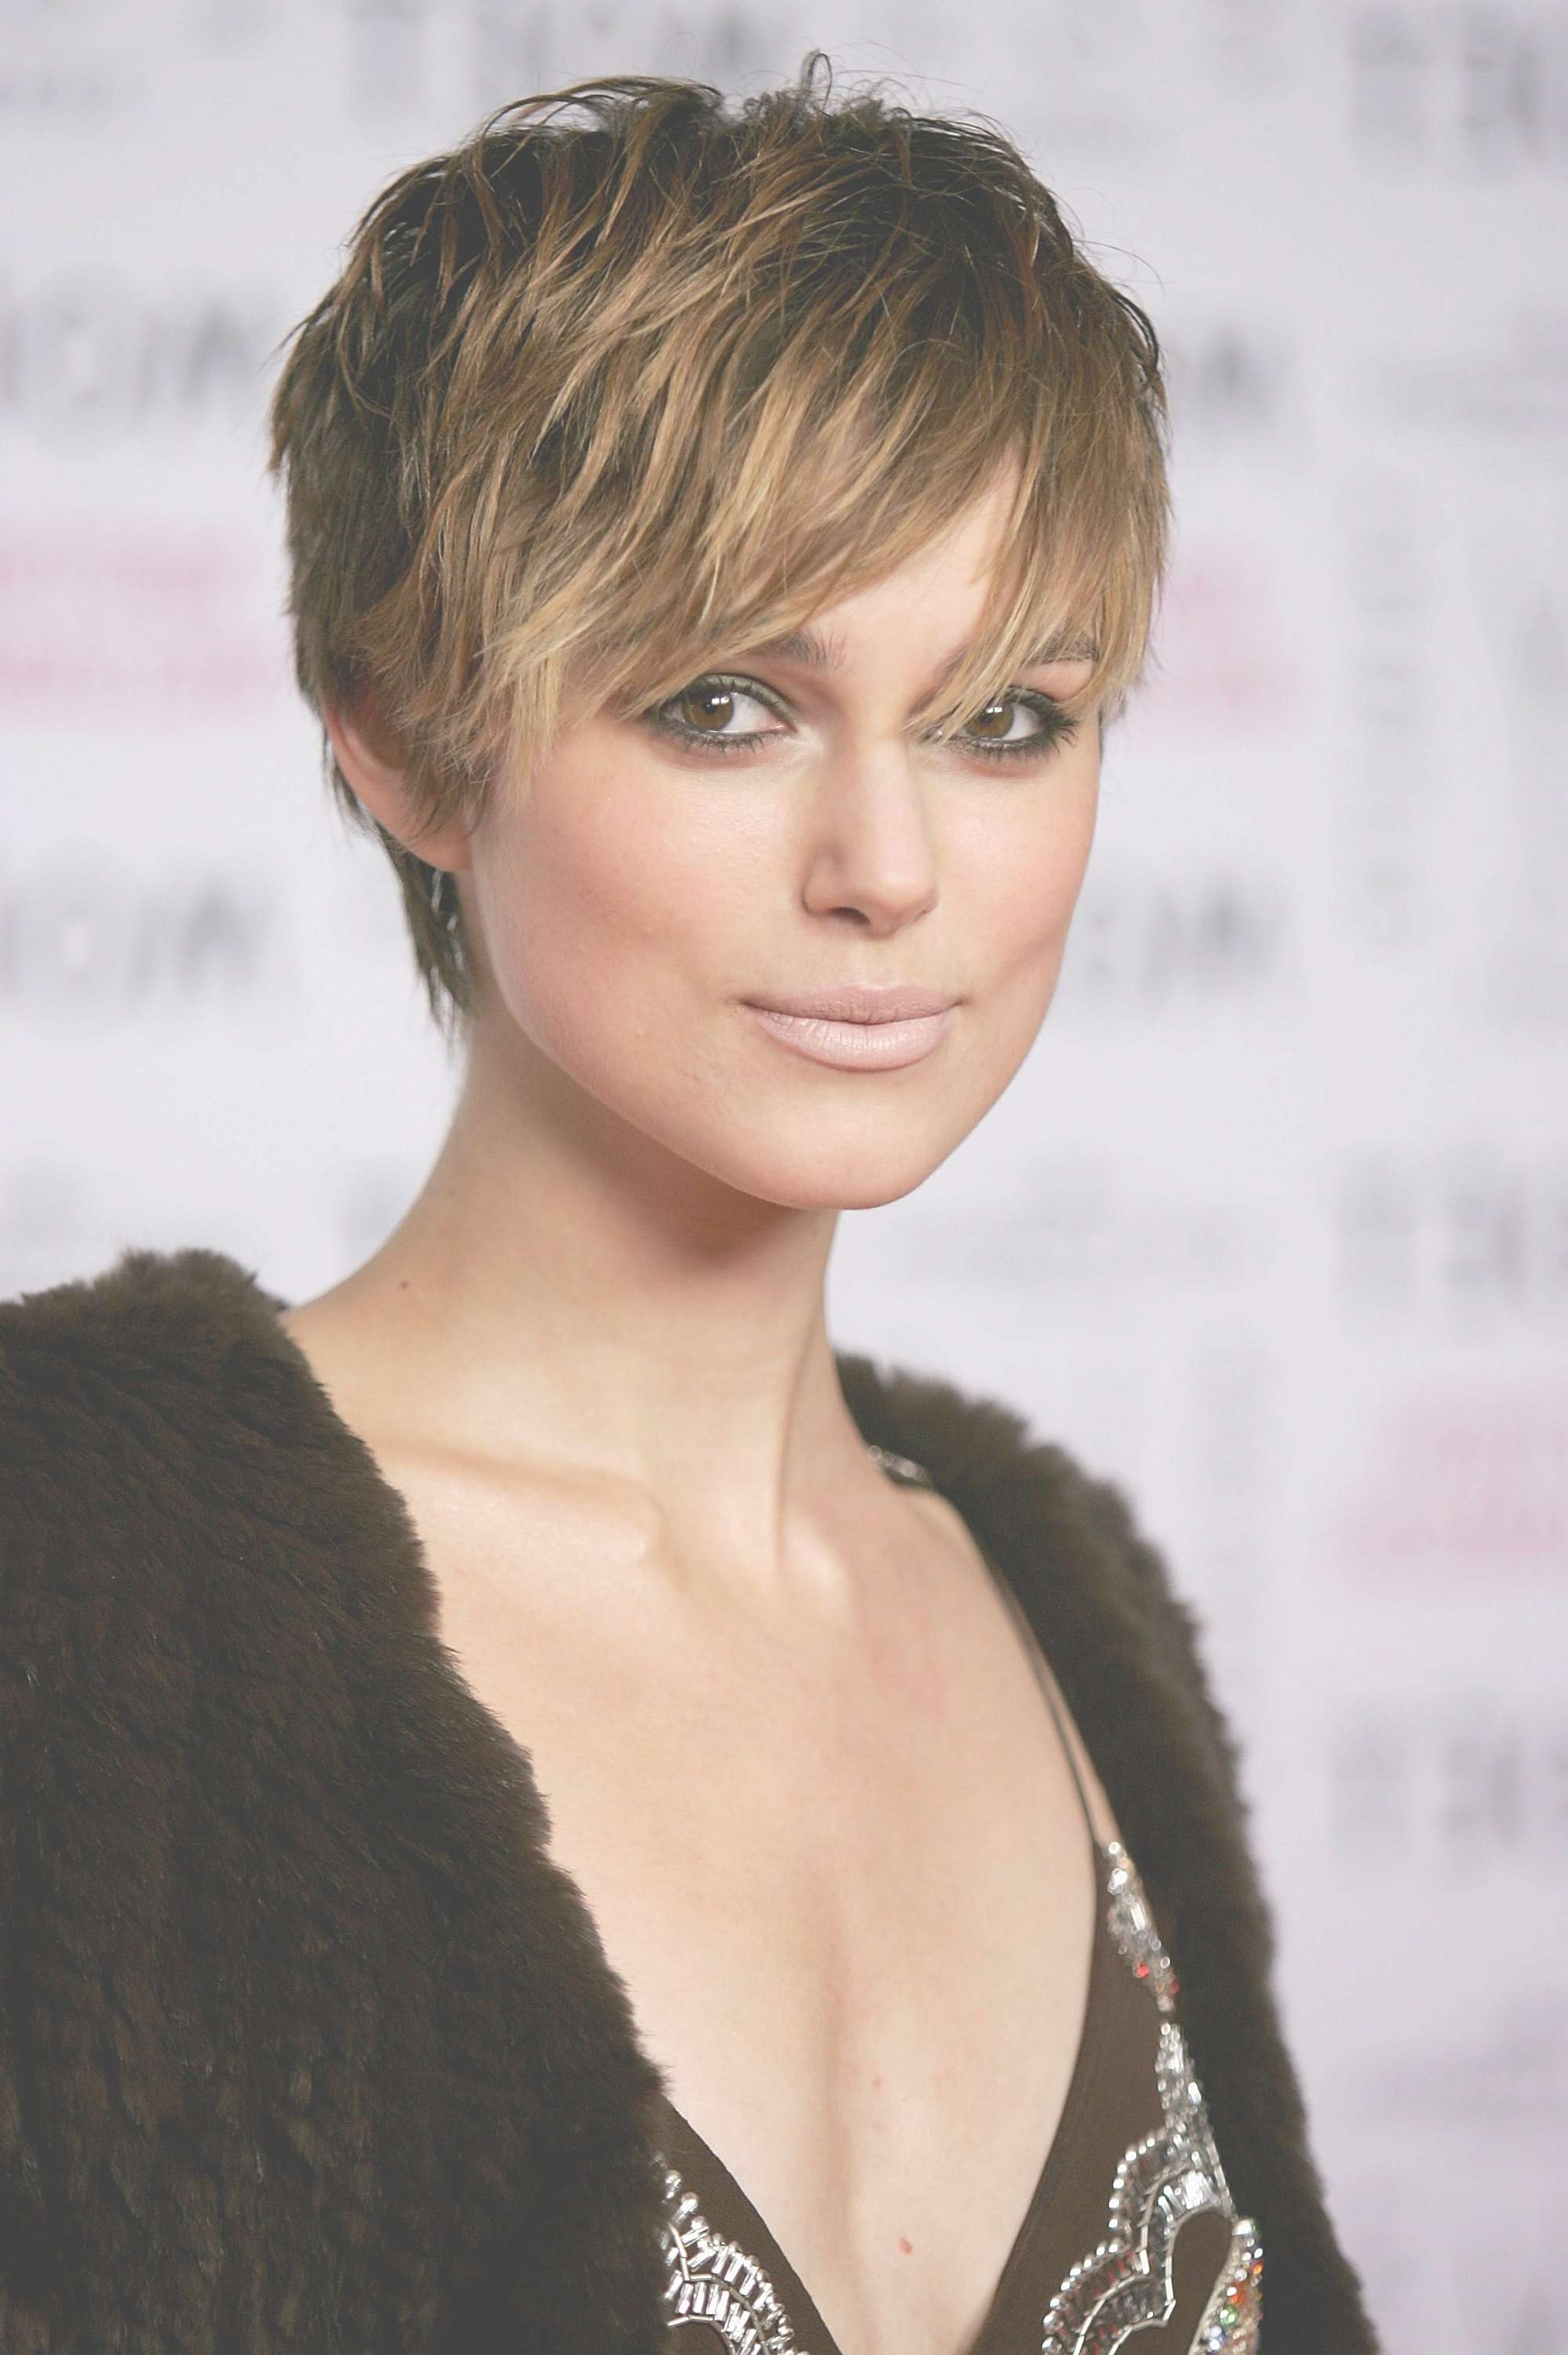 53 Best Pixie Cut Hairstyle Ideas 2018 – Cute Celebrity Pixie Haircuts For Most Recent Actress Pixie Hairstyles (View 5 of 15)